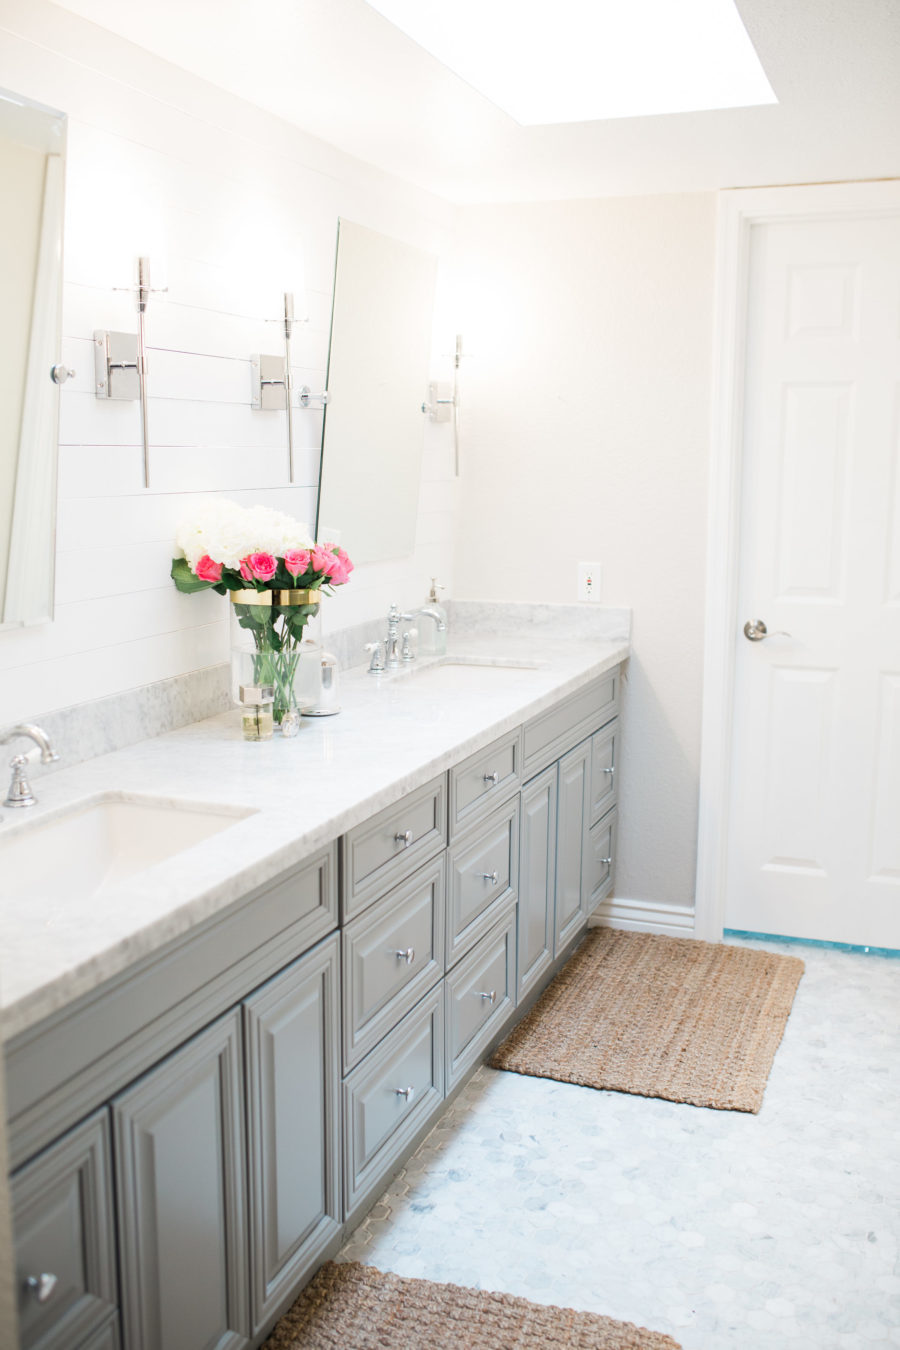 Bathroom Remodel On A Budget Ideas 2018 - Home Comforts